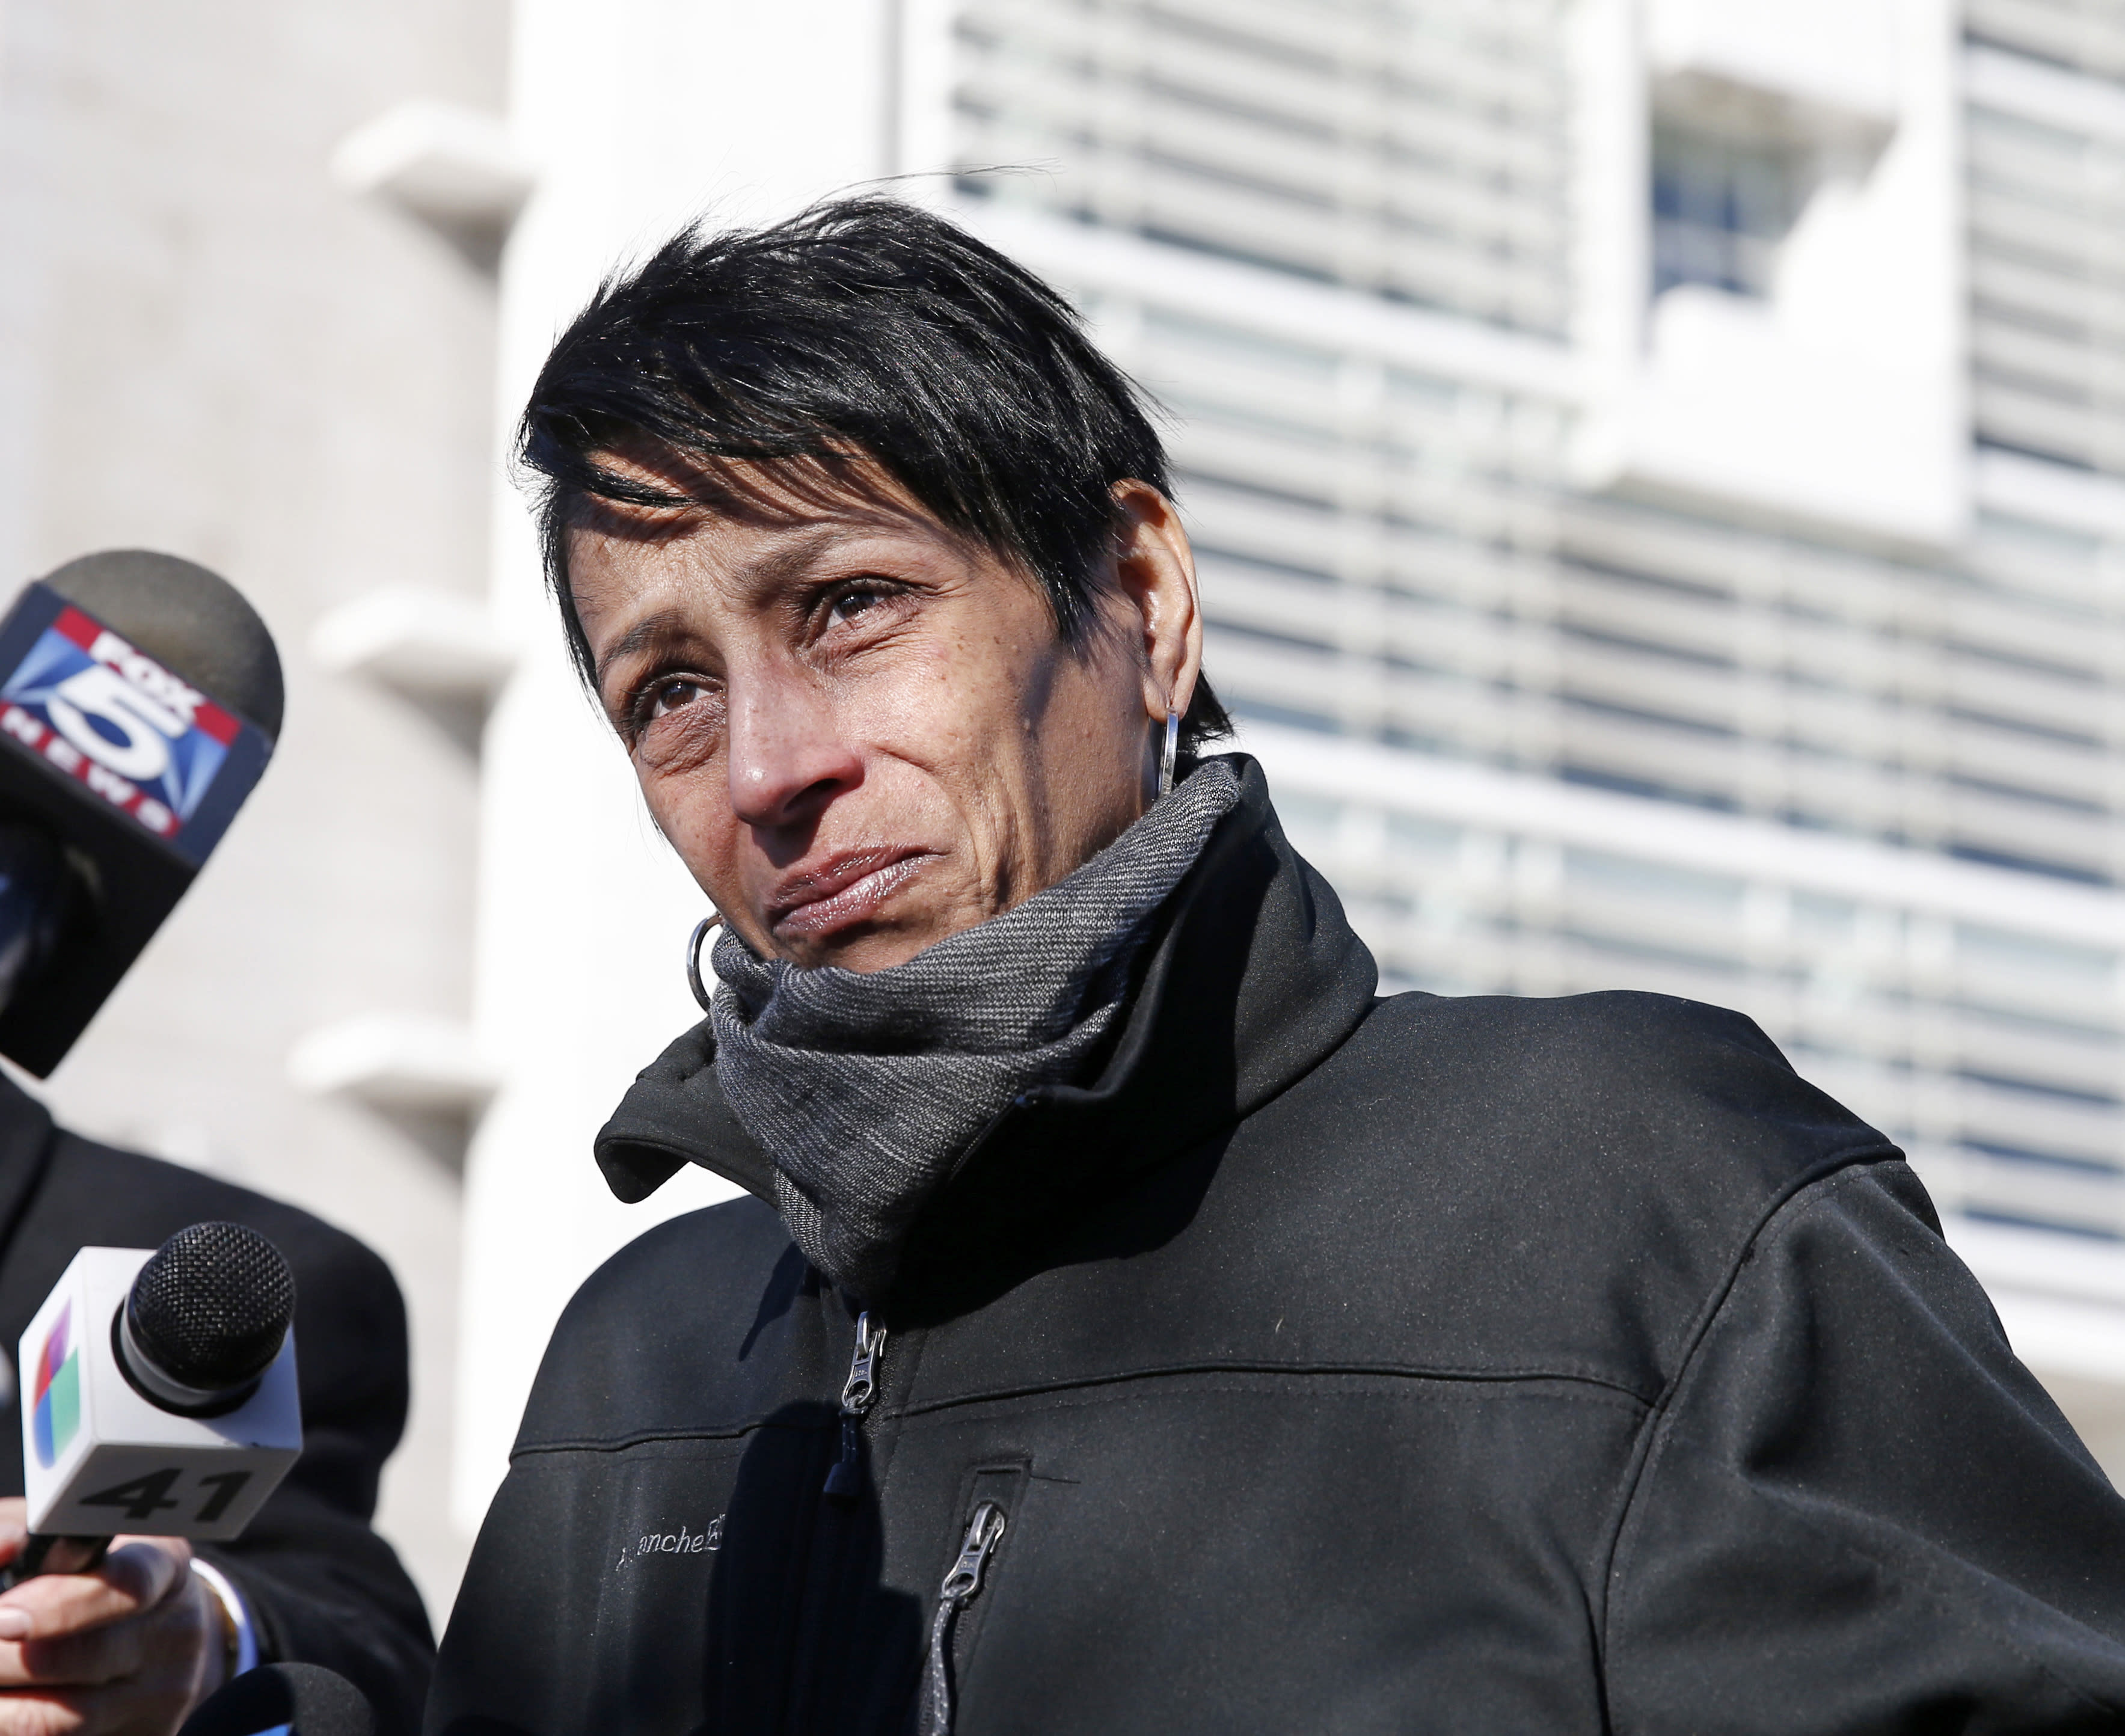 FILE- In this March 2, 2017 file photo, Evelyn Rodriguez, mother of Kayla Cuevas, 16, who was brutally slain in 2016 allegedly by members of the MS-13 street gang, stops to talk members of the press gathered outside U.S. District Court in Central Islip, N.Y. Rodriguez, who was recognized by President Donald Trump at the State of the Union after he daughter was murdered, was struck and killed by a car at her daughter's memorial on Friday, Sept. 14, 2018. (AP Photo/Kathy Willens, File)